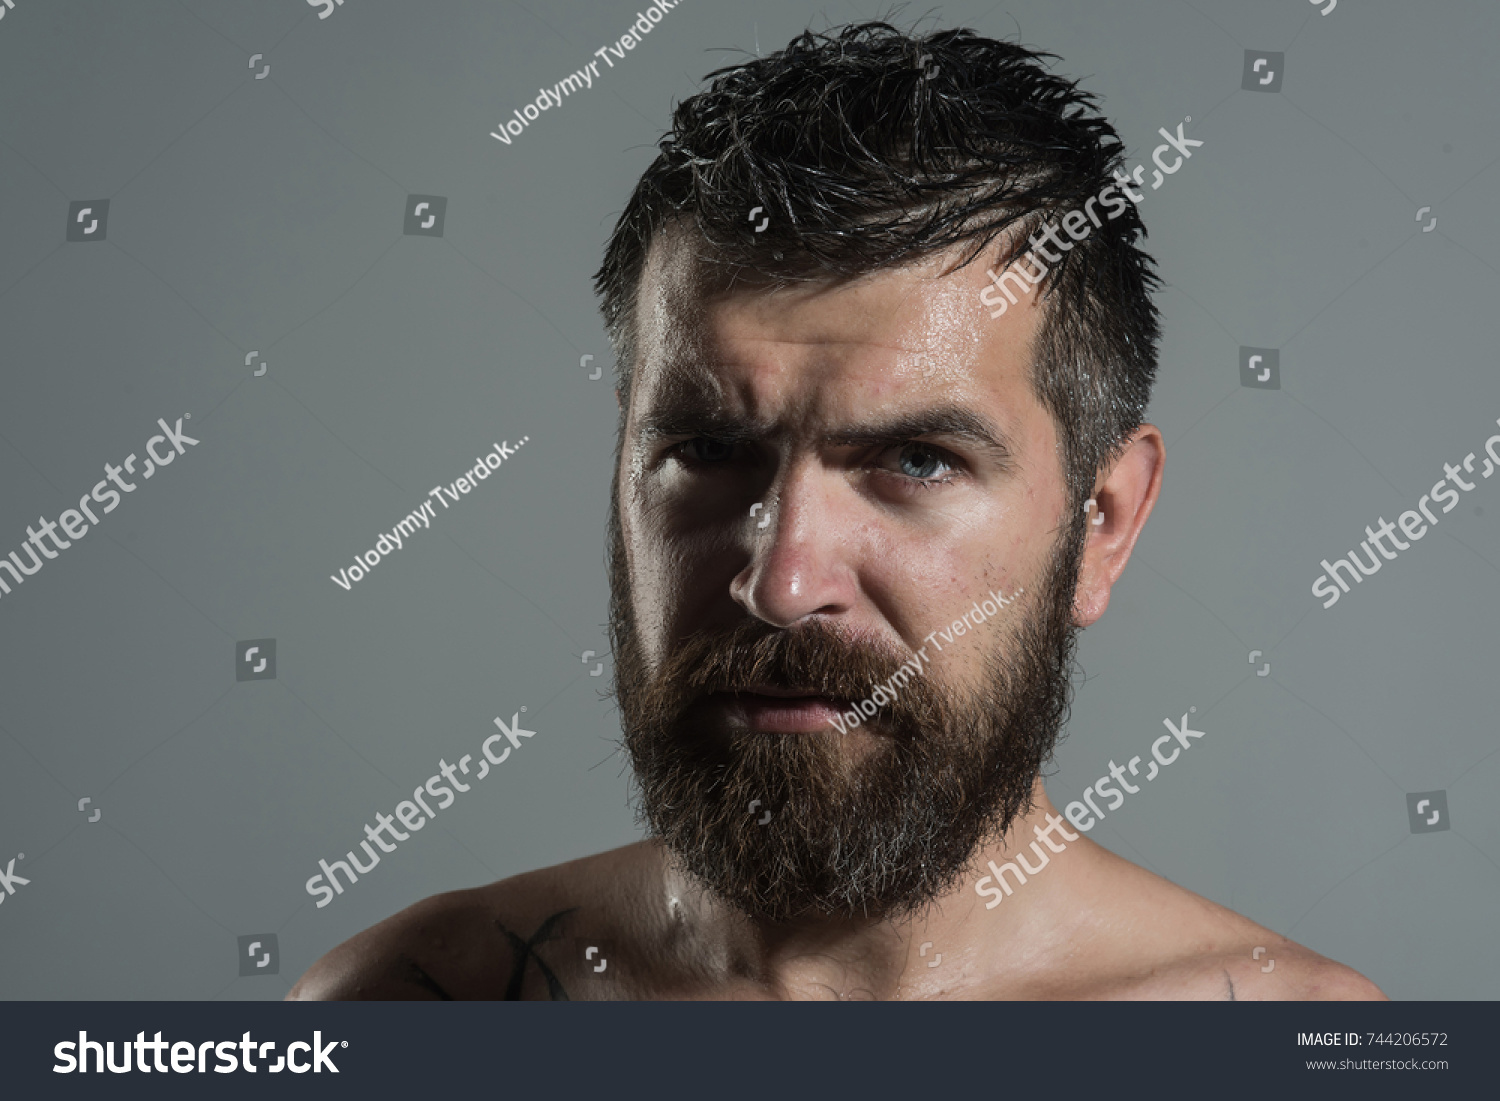 Serious face guy naked pic 134